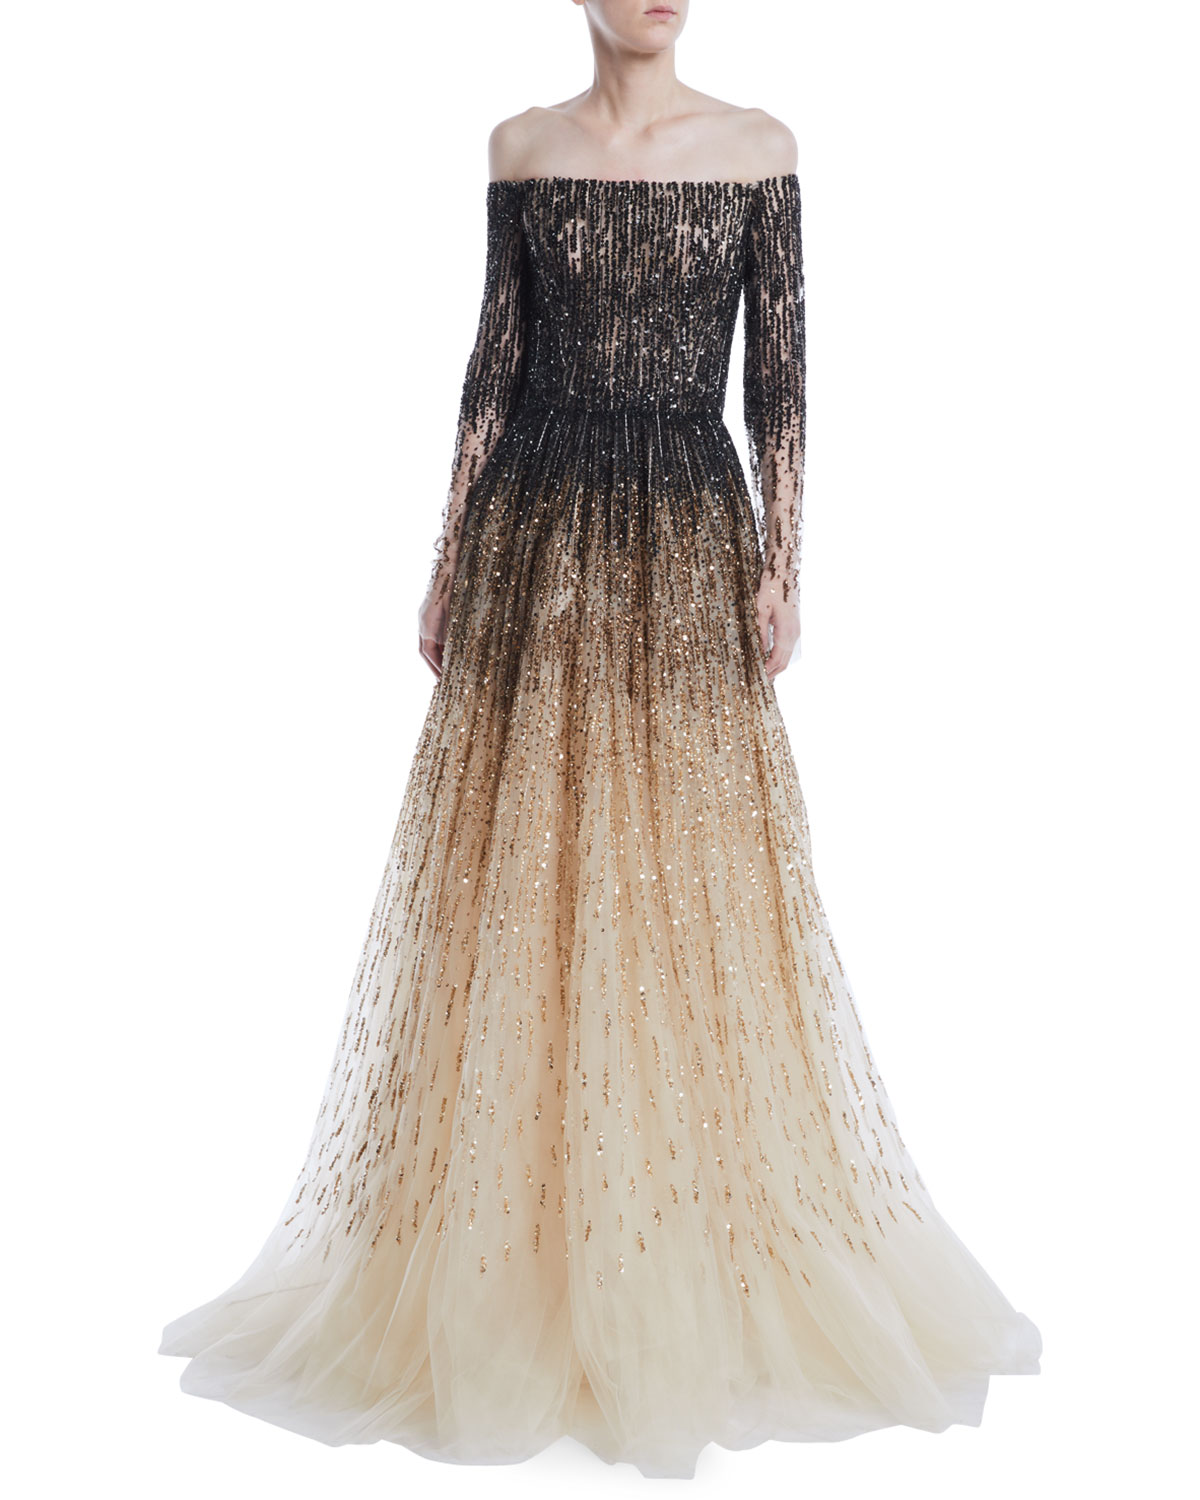 Pamella RolandOff-the-Shoulder Ombre Sequin   Crystal-Beaded Tulle Ball Gown.  Free Shipping ... 2181c2ec2567